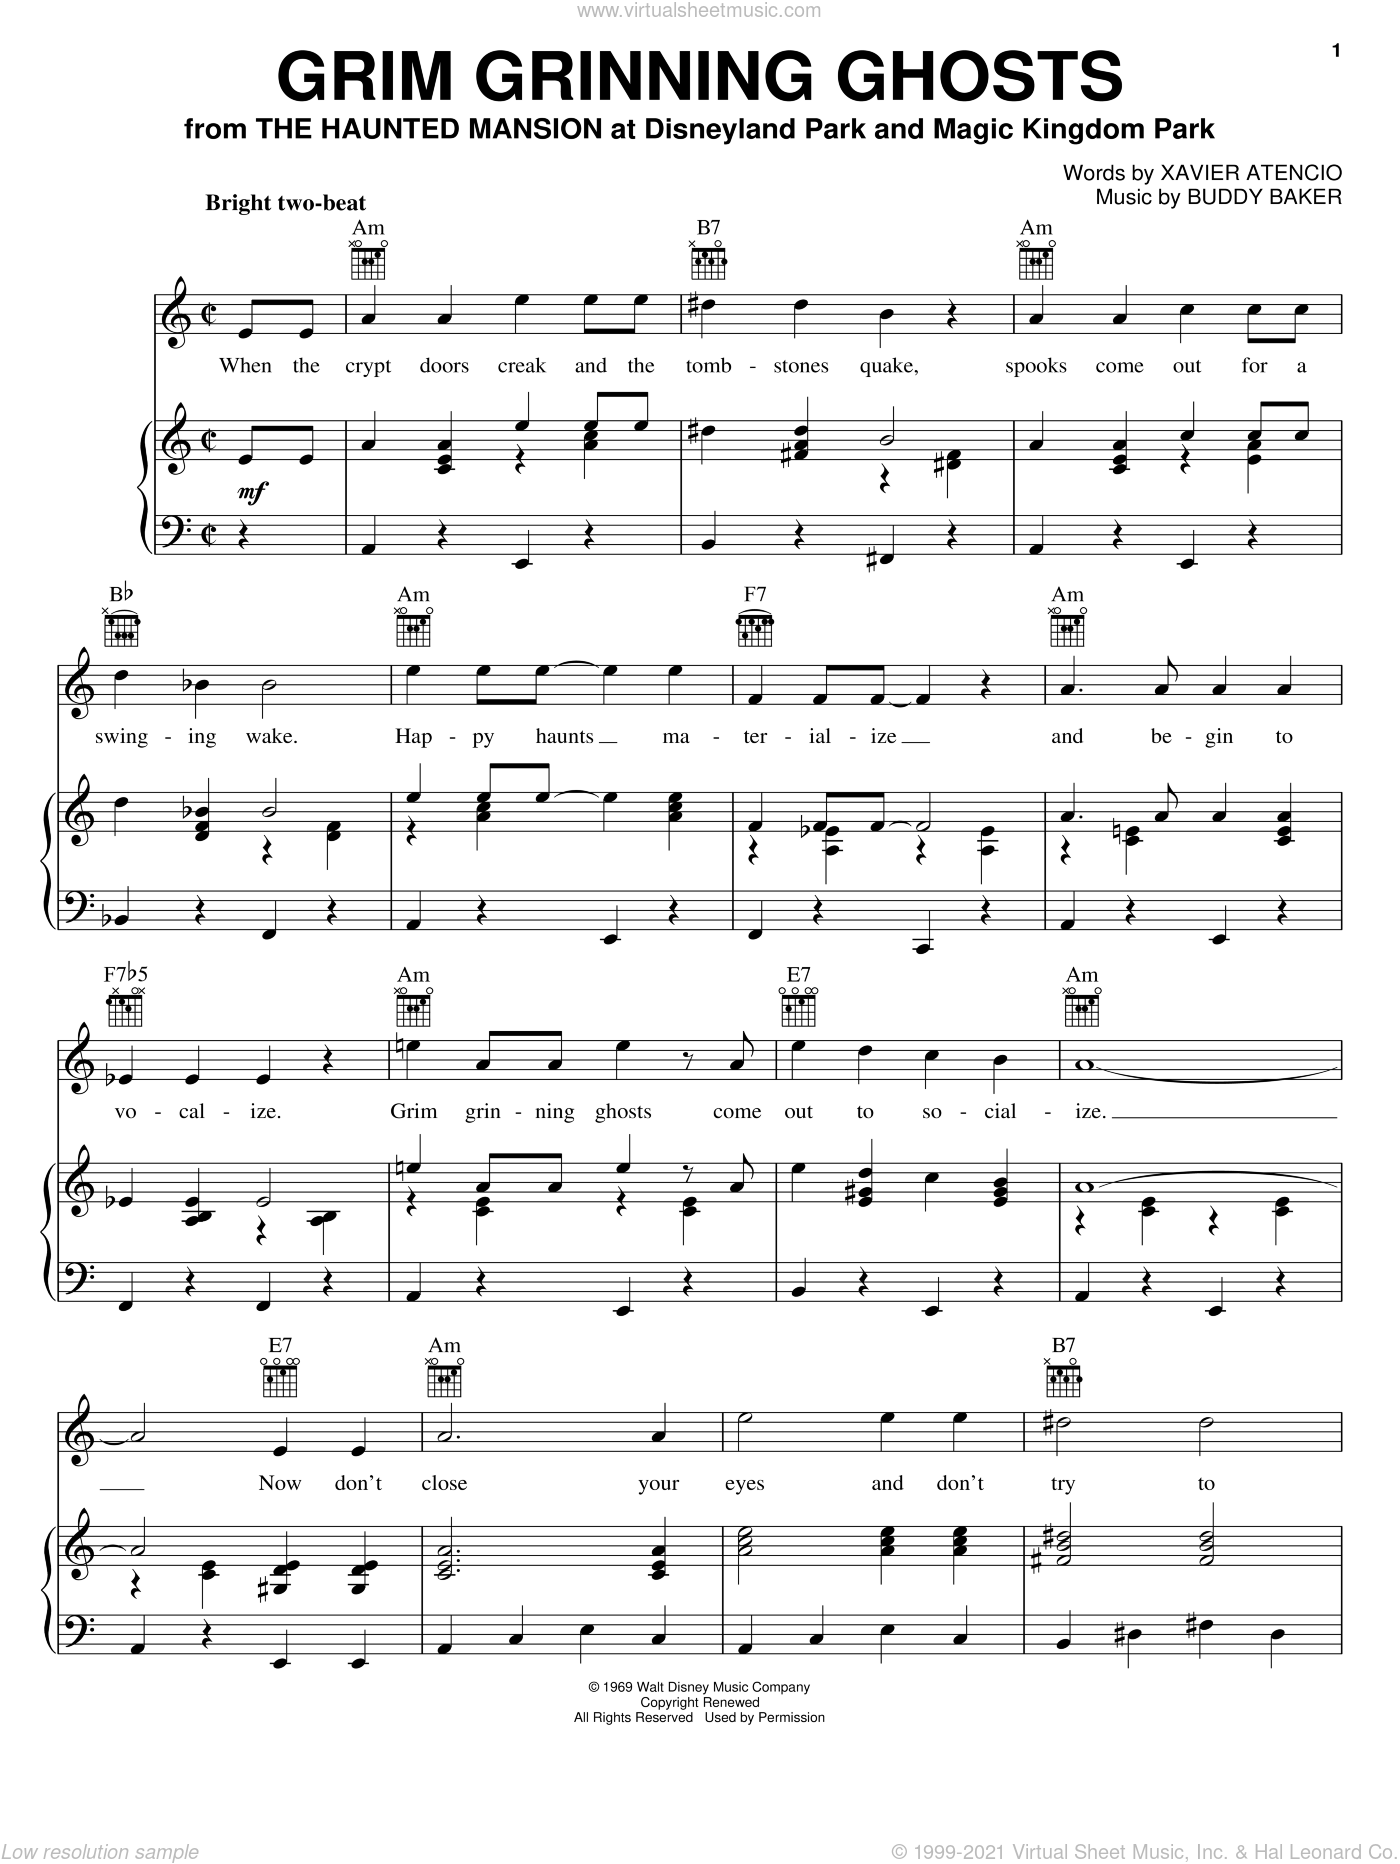 Grim Grinning Ghosts sheet music for voice, piano or guitar by Xavier Atencio and Buddy Baker, intermediate skill level